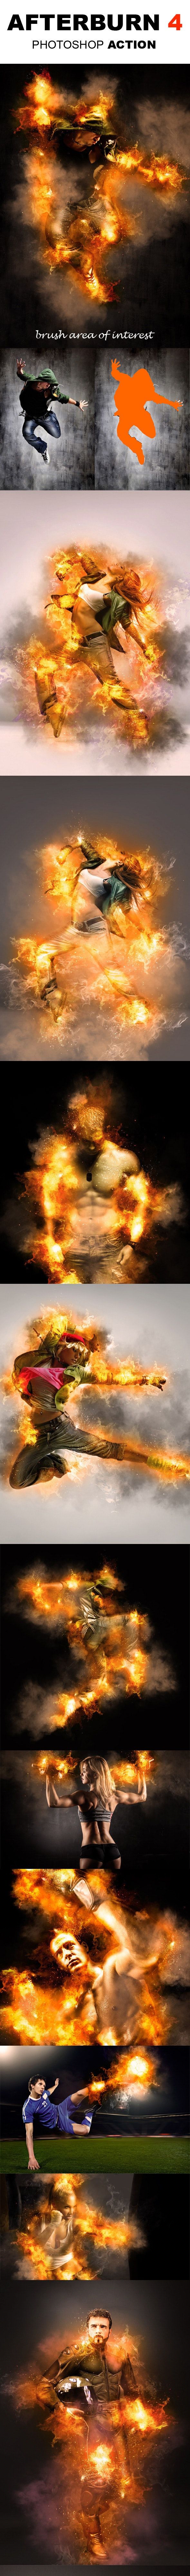 AfterBurn 4 Photoshop Action - Photo Effects Actions